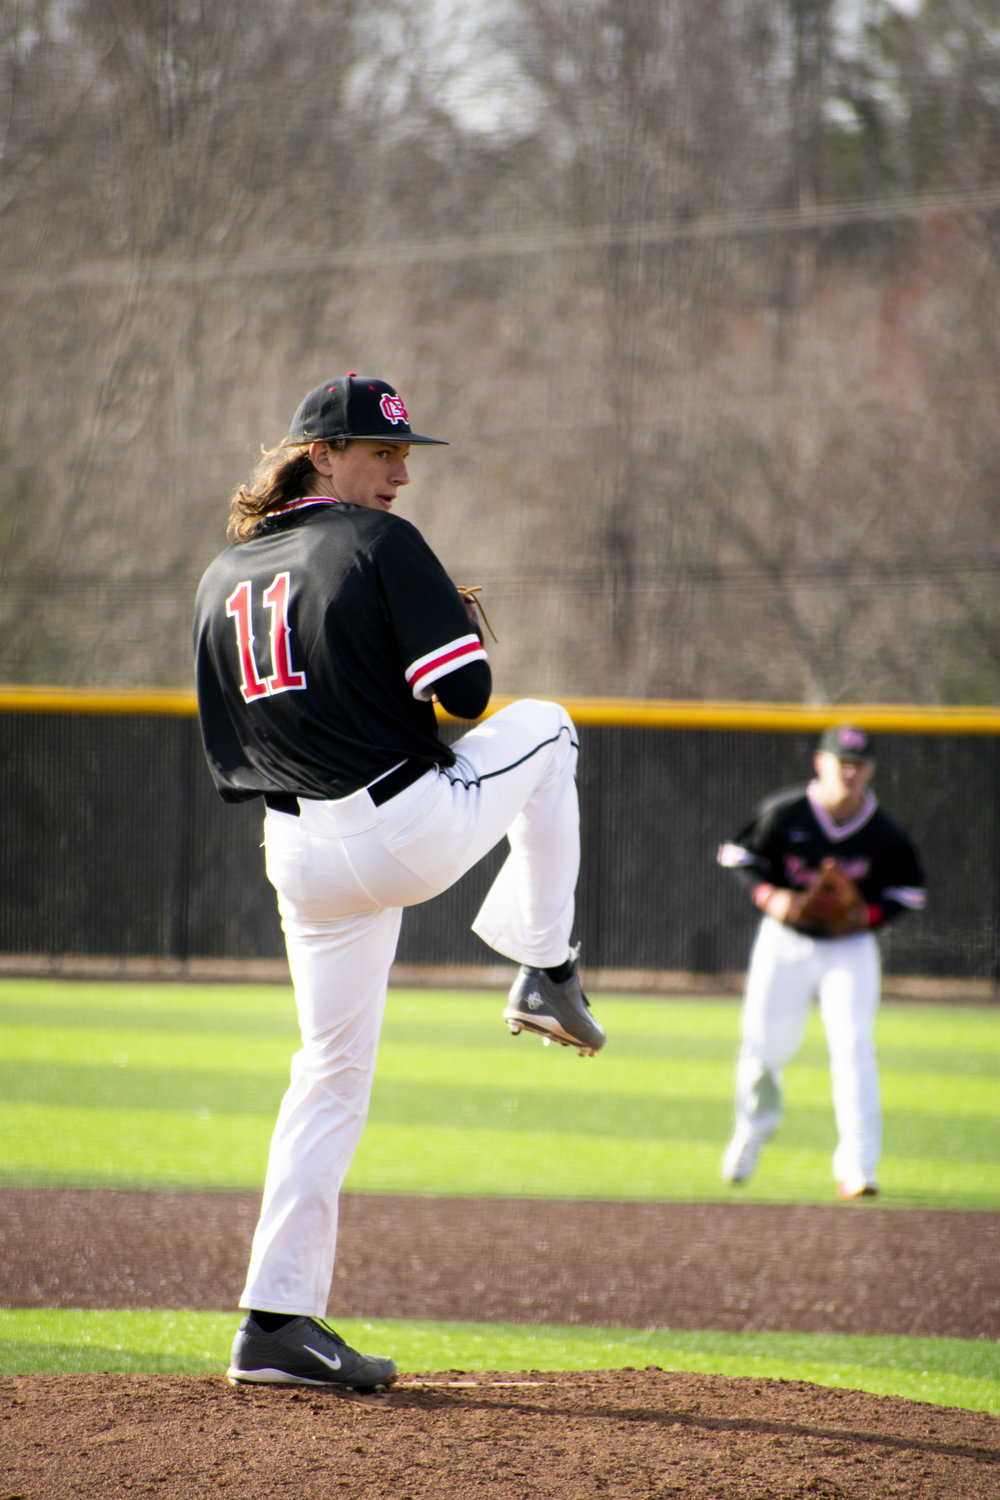 Junior Michael Giacone (11) pitches the ball.